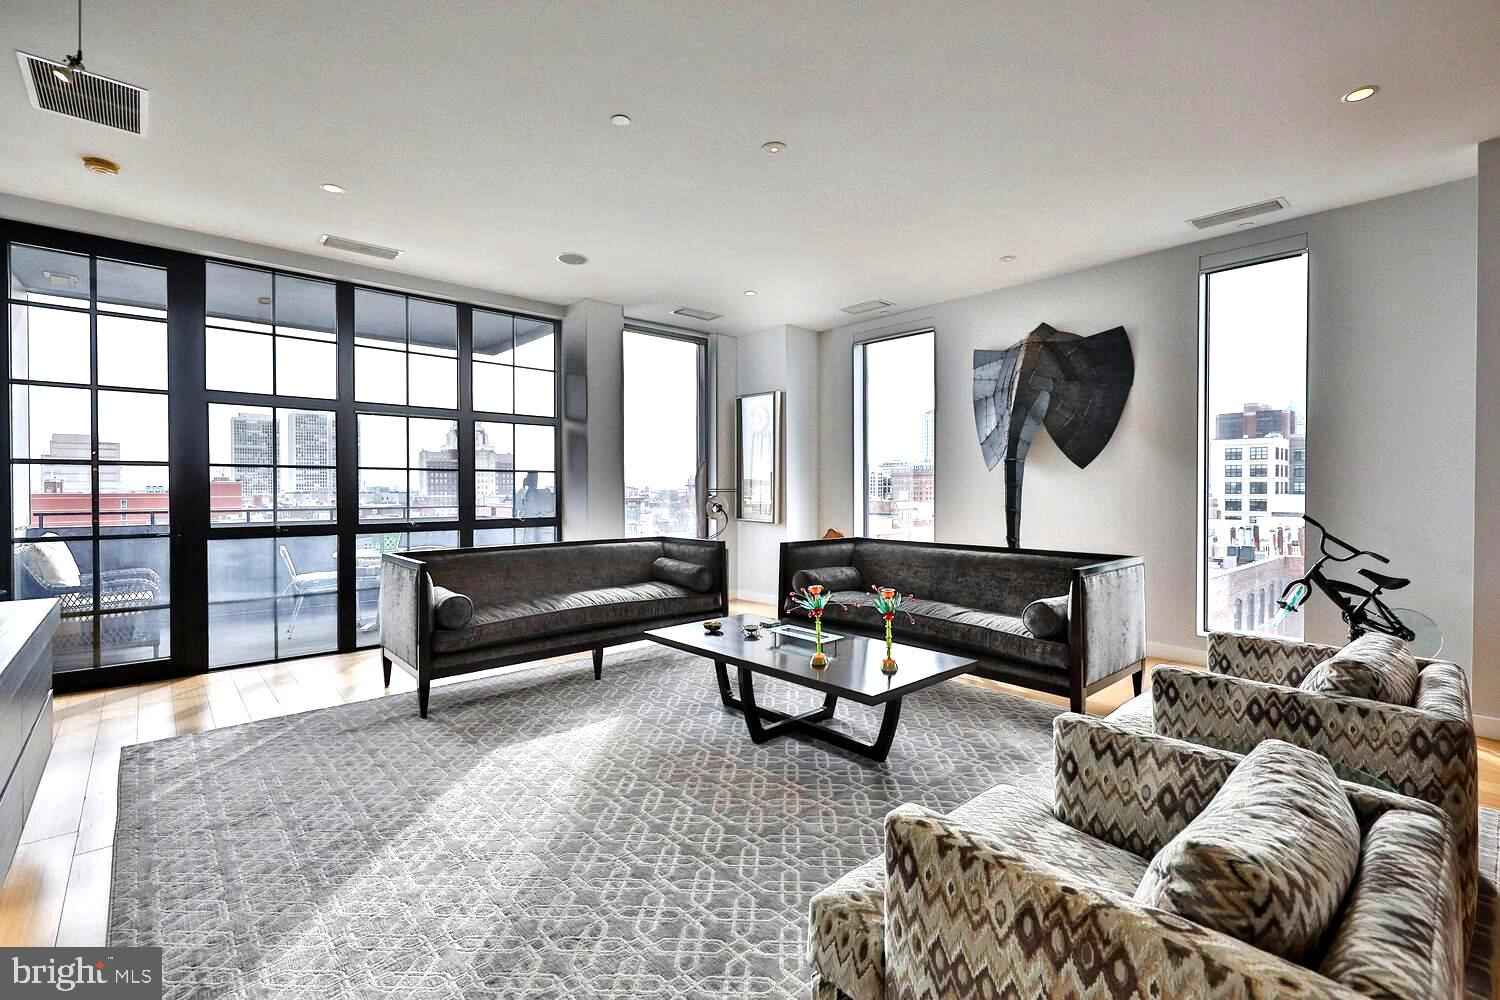 """This one of a kind, architecturally designed, 12-story modern masterpiece was built by renowned developers Brown-Hill.  Enjoy condo living in Old City, a quiet Historic neighborhood, where you can walk to theaters, the finest restaurants, galleries, and parks. This boutique building has a concierge staffed lobby. There are 2 elevators which open directly into this sunlit luxurious unit with stunning panoramic city, river, and bridge views! 10' ceilings, bamboo floors, floor to ceiling windows, a private balcony, an open Kitchen, Dining Room and Living Room, The Chef's Kitchen features a 36"""" Viking 6 burner gas range, Viking warming drawer, Viking refrigerator, two Fisher Paykel dishwashers, custom cabinets, honed granite countertops, pantry closet with a microwave, plus a breakfast bar for 3. A large Den/Bedroom with pocket doors consists of a custom Wet Bar, Viking wine refrigerator, plus incredible views. The Master Suite includes a custom platform bed with a built-in dresser with an abundance of drawers/shelves, and North, West & bridge and river views, plus, a huge custom walk-In closet. This sumptuous Master Bath Includes an oversized shower with massage jets, an oversized double-sink vanity with a stone countertop, Kohler & Grohe fixtures, a separate toilet closet, and a large linen closet. The second Bedroom En-Suite has views of the bridge as well. Other features include a large Foyer with a dramatic tray ceiling with up lights, a Powder Room with plaster stencil walls, a laundry room with a front-loading Whirlpool Washer & Dryer, a cedar closet, a large storage closet, 2 zone HVAC, custom blinds, built-In ceiling speakers, and best of all an assigned Covered PARKING Space!"""